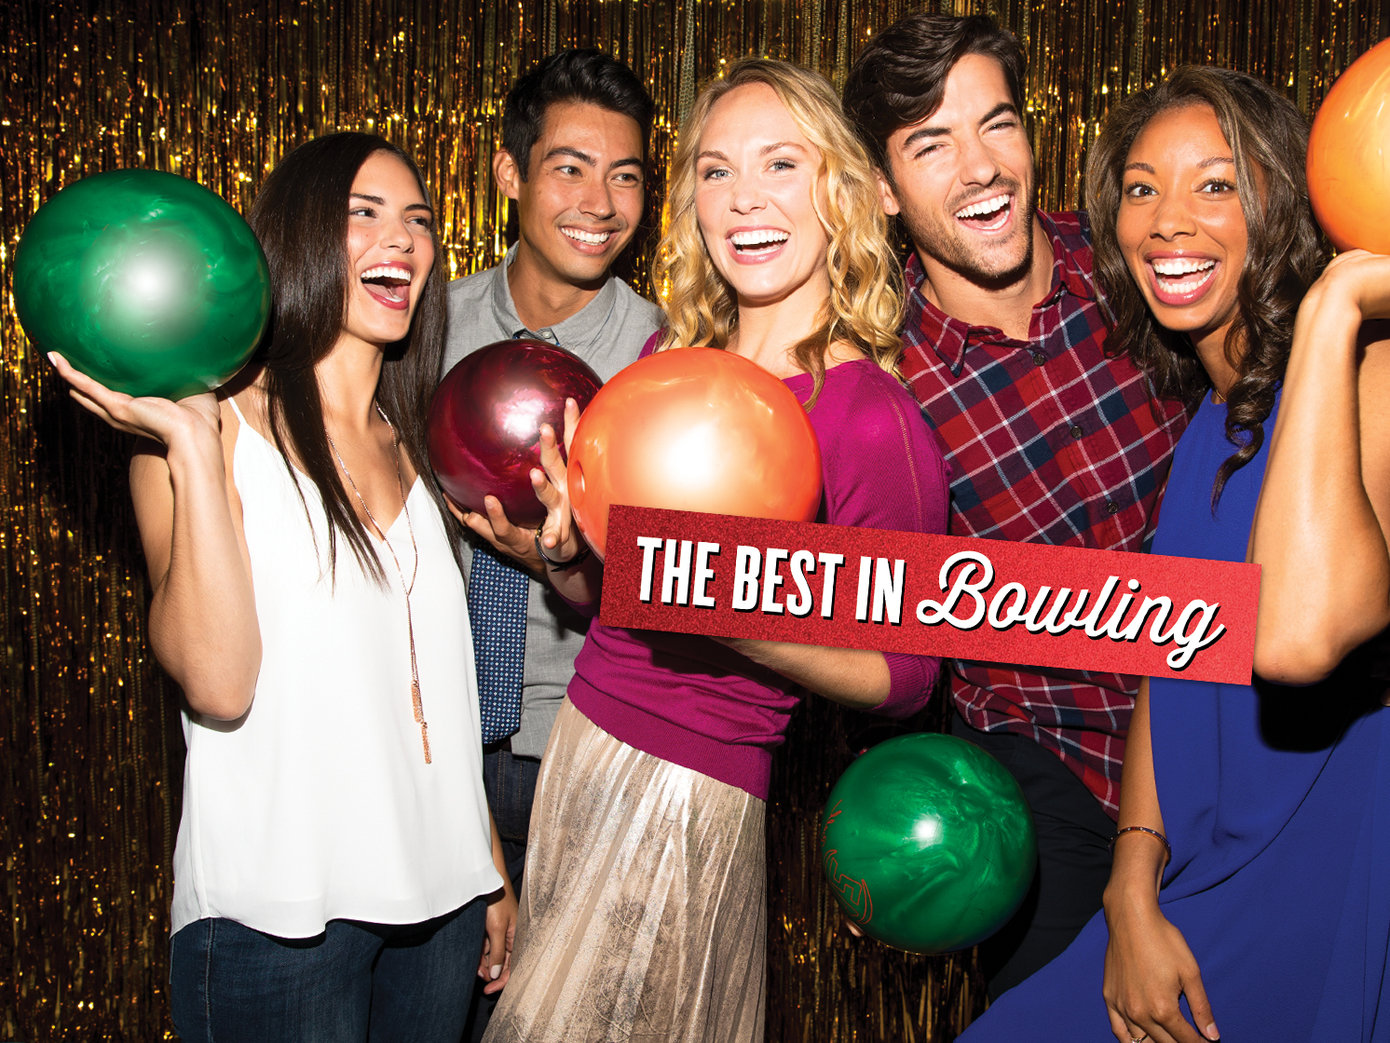 Group of 5 young adults with bowling balls. It reads 'The best in bowling' on red foil on top